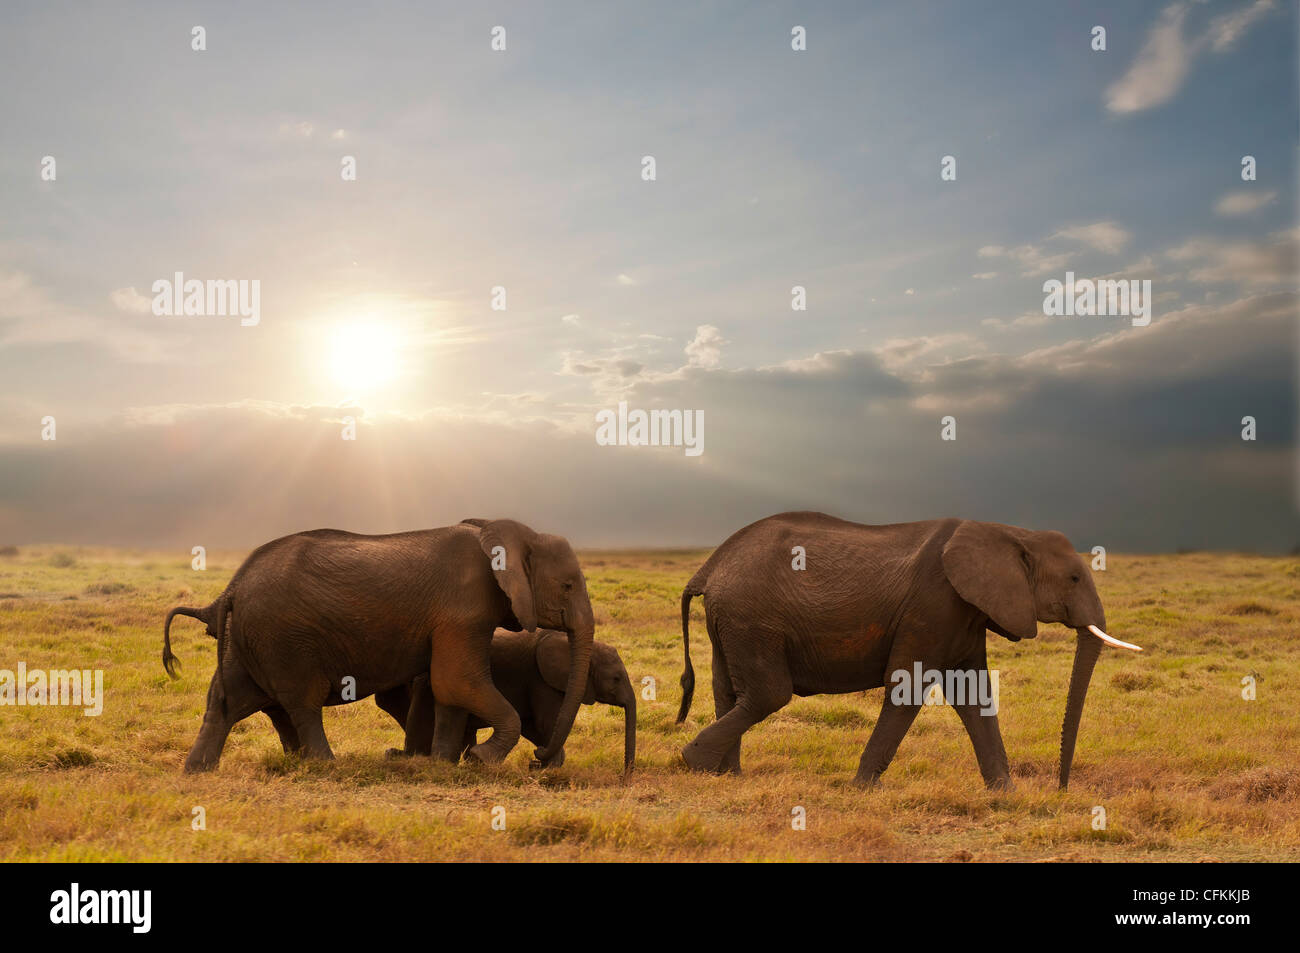 Famille d'éléphants dans le parc national Amboseli, Kenya Photo Stock